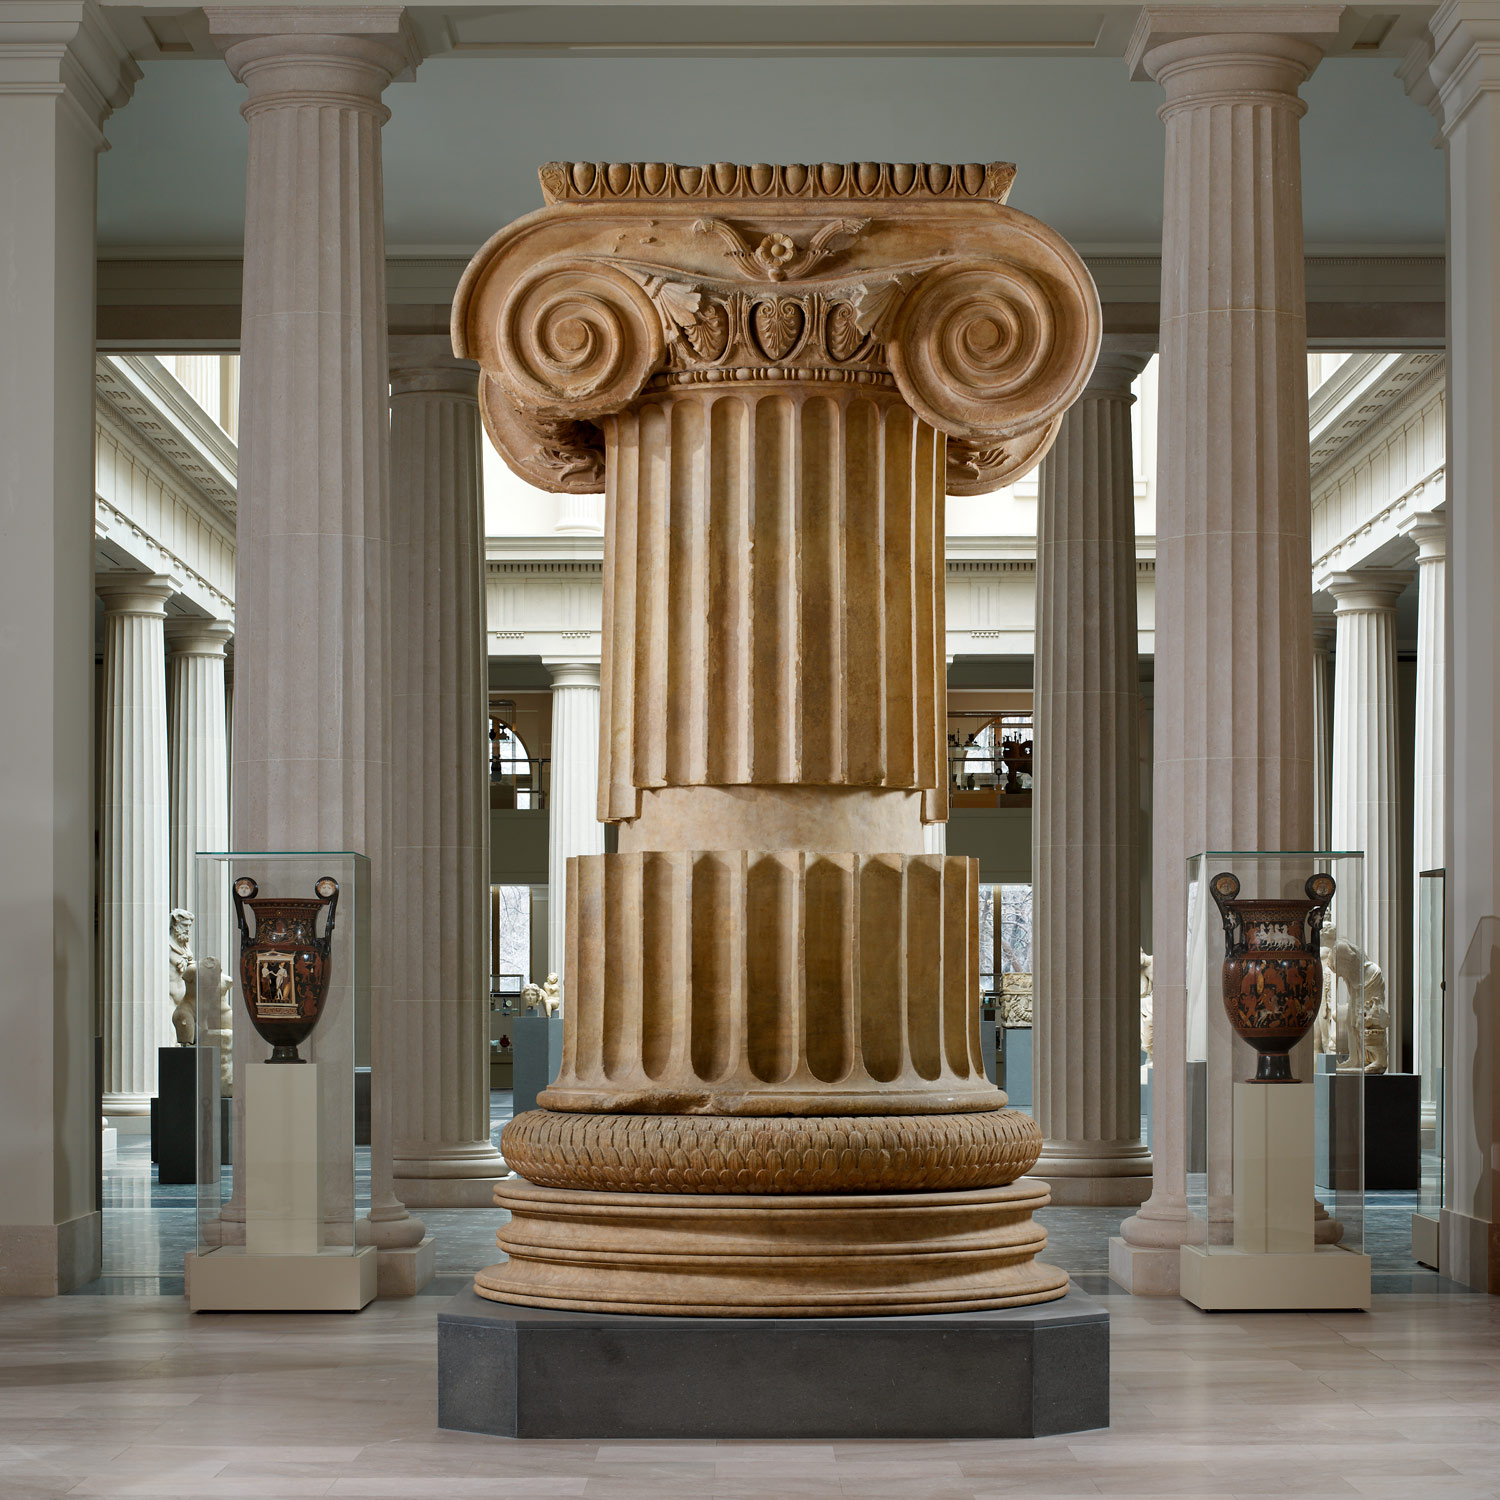 greek architecture essay essay on greek architecture essay architecture in ancient essay heilbrunn timeline of art marble column from the temple of artemis